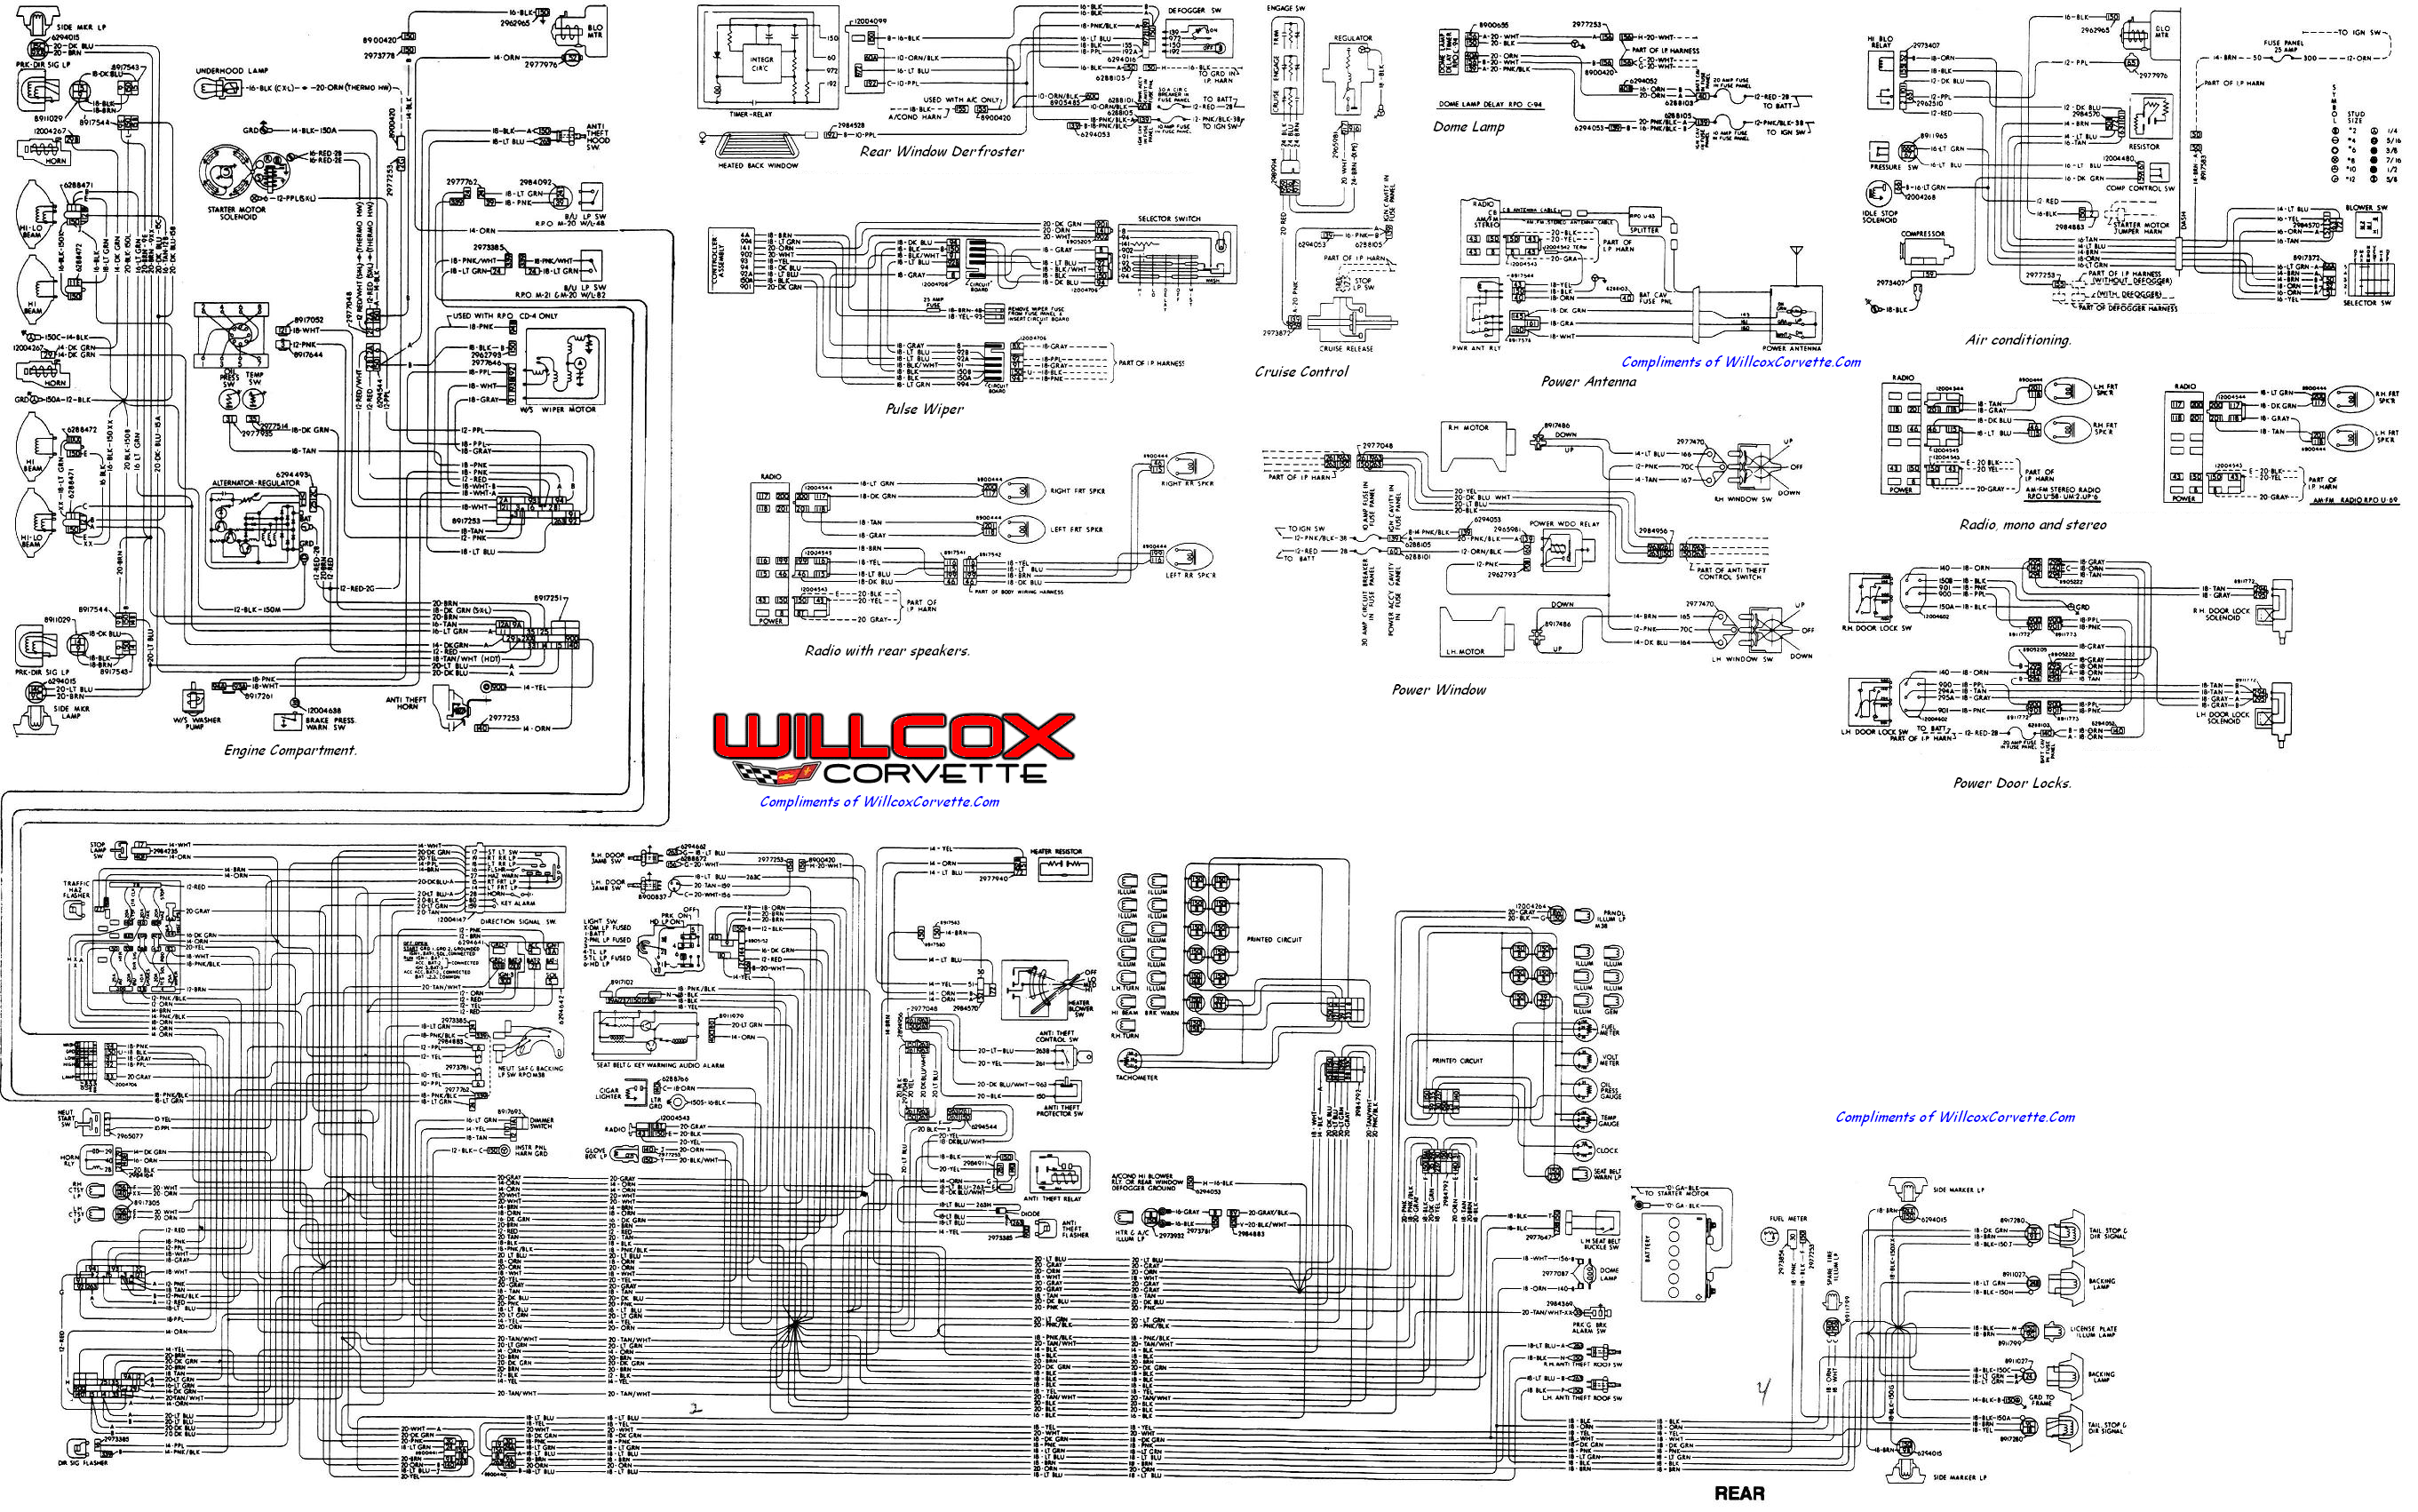 1981 Firebird Wiring Diagram